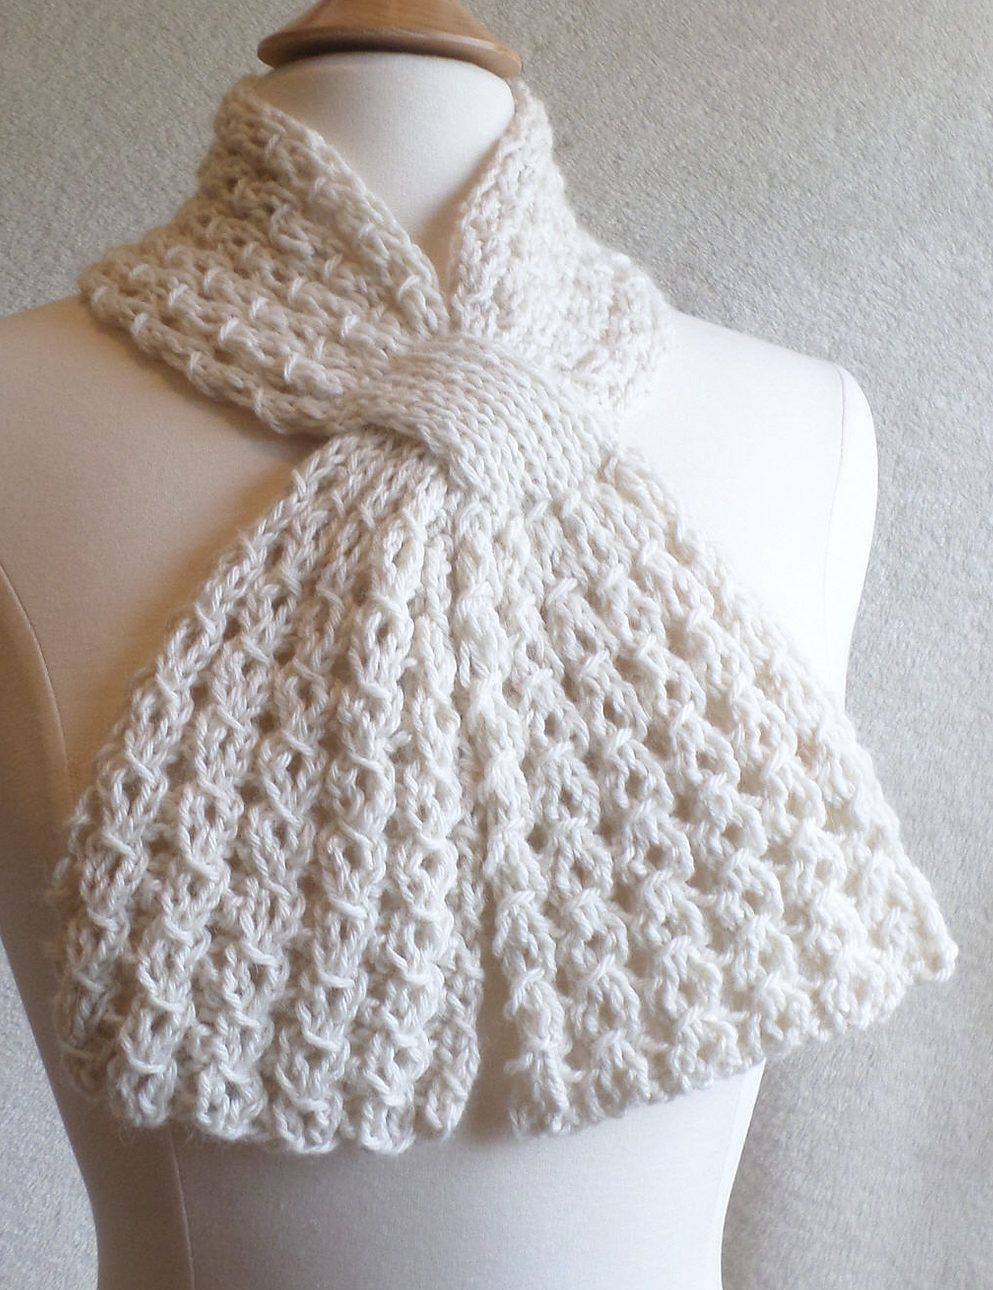 Free Lace Knitting Patterns For Scarves : Free knitting pattern for row repeat loopy lace scarf